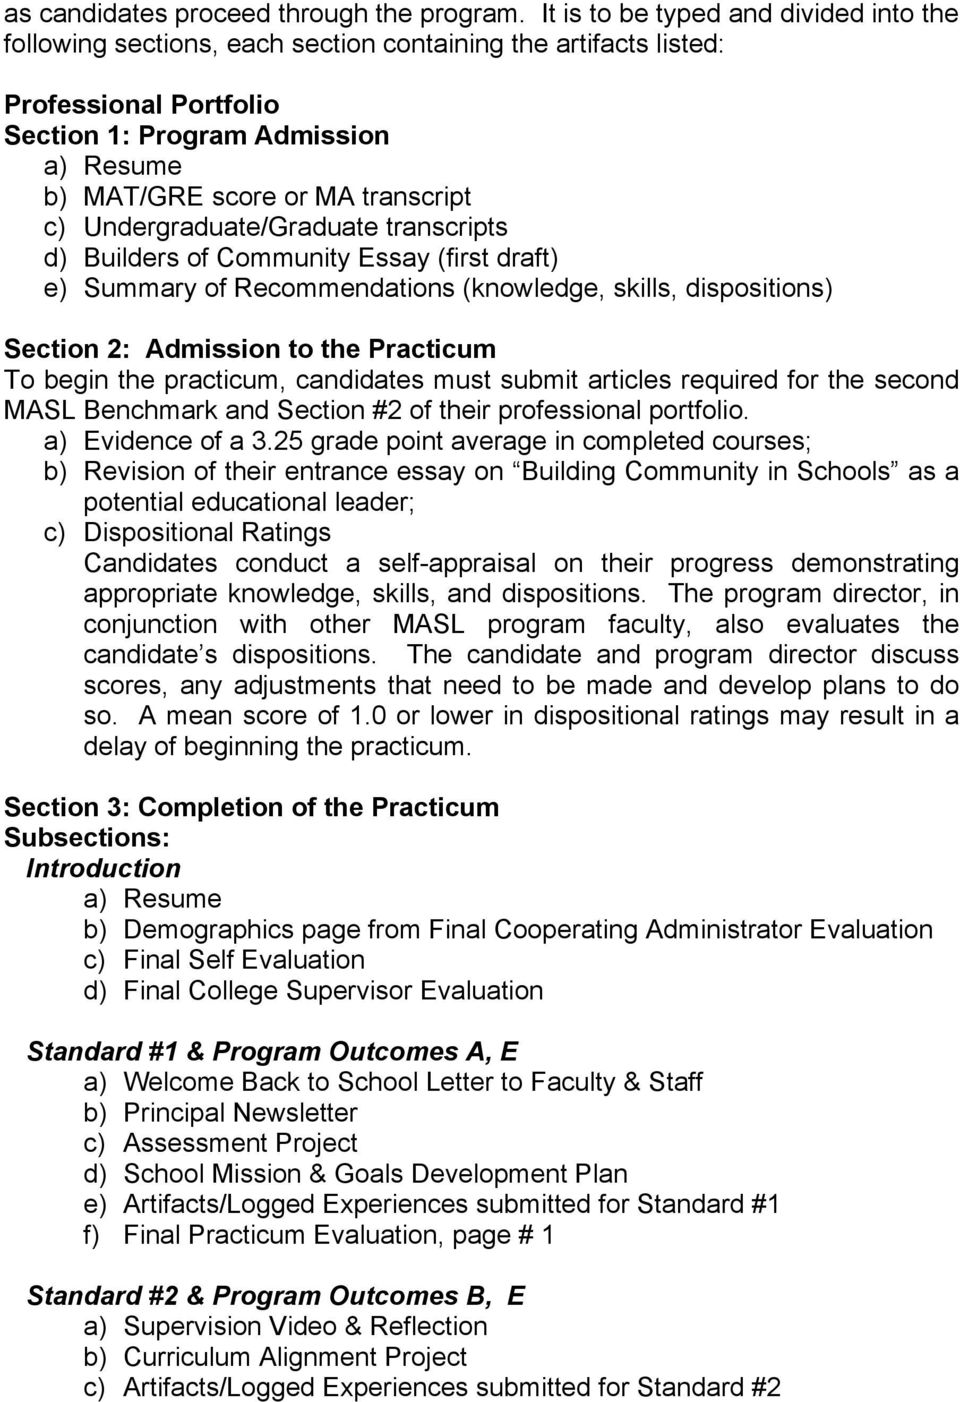 transcript c) Undergraduate/Graduate transcripts d) Builders of Community Essay (first draft) e) Summary of Recommendations (knowledge, skills, dispositions) Section 2: Admission to the Practicum To